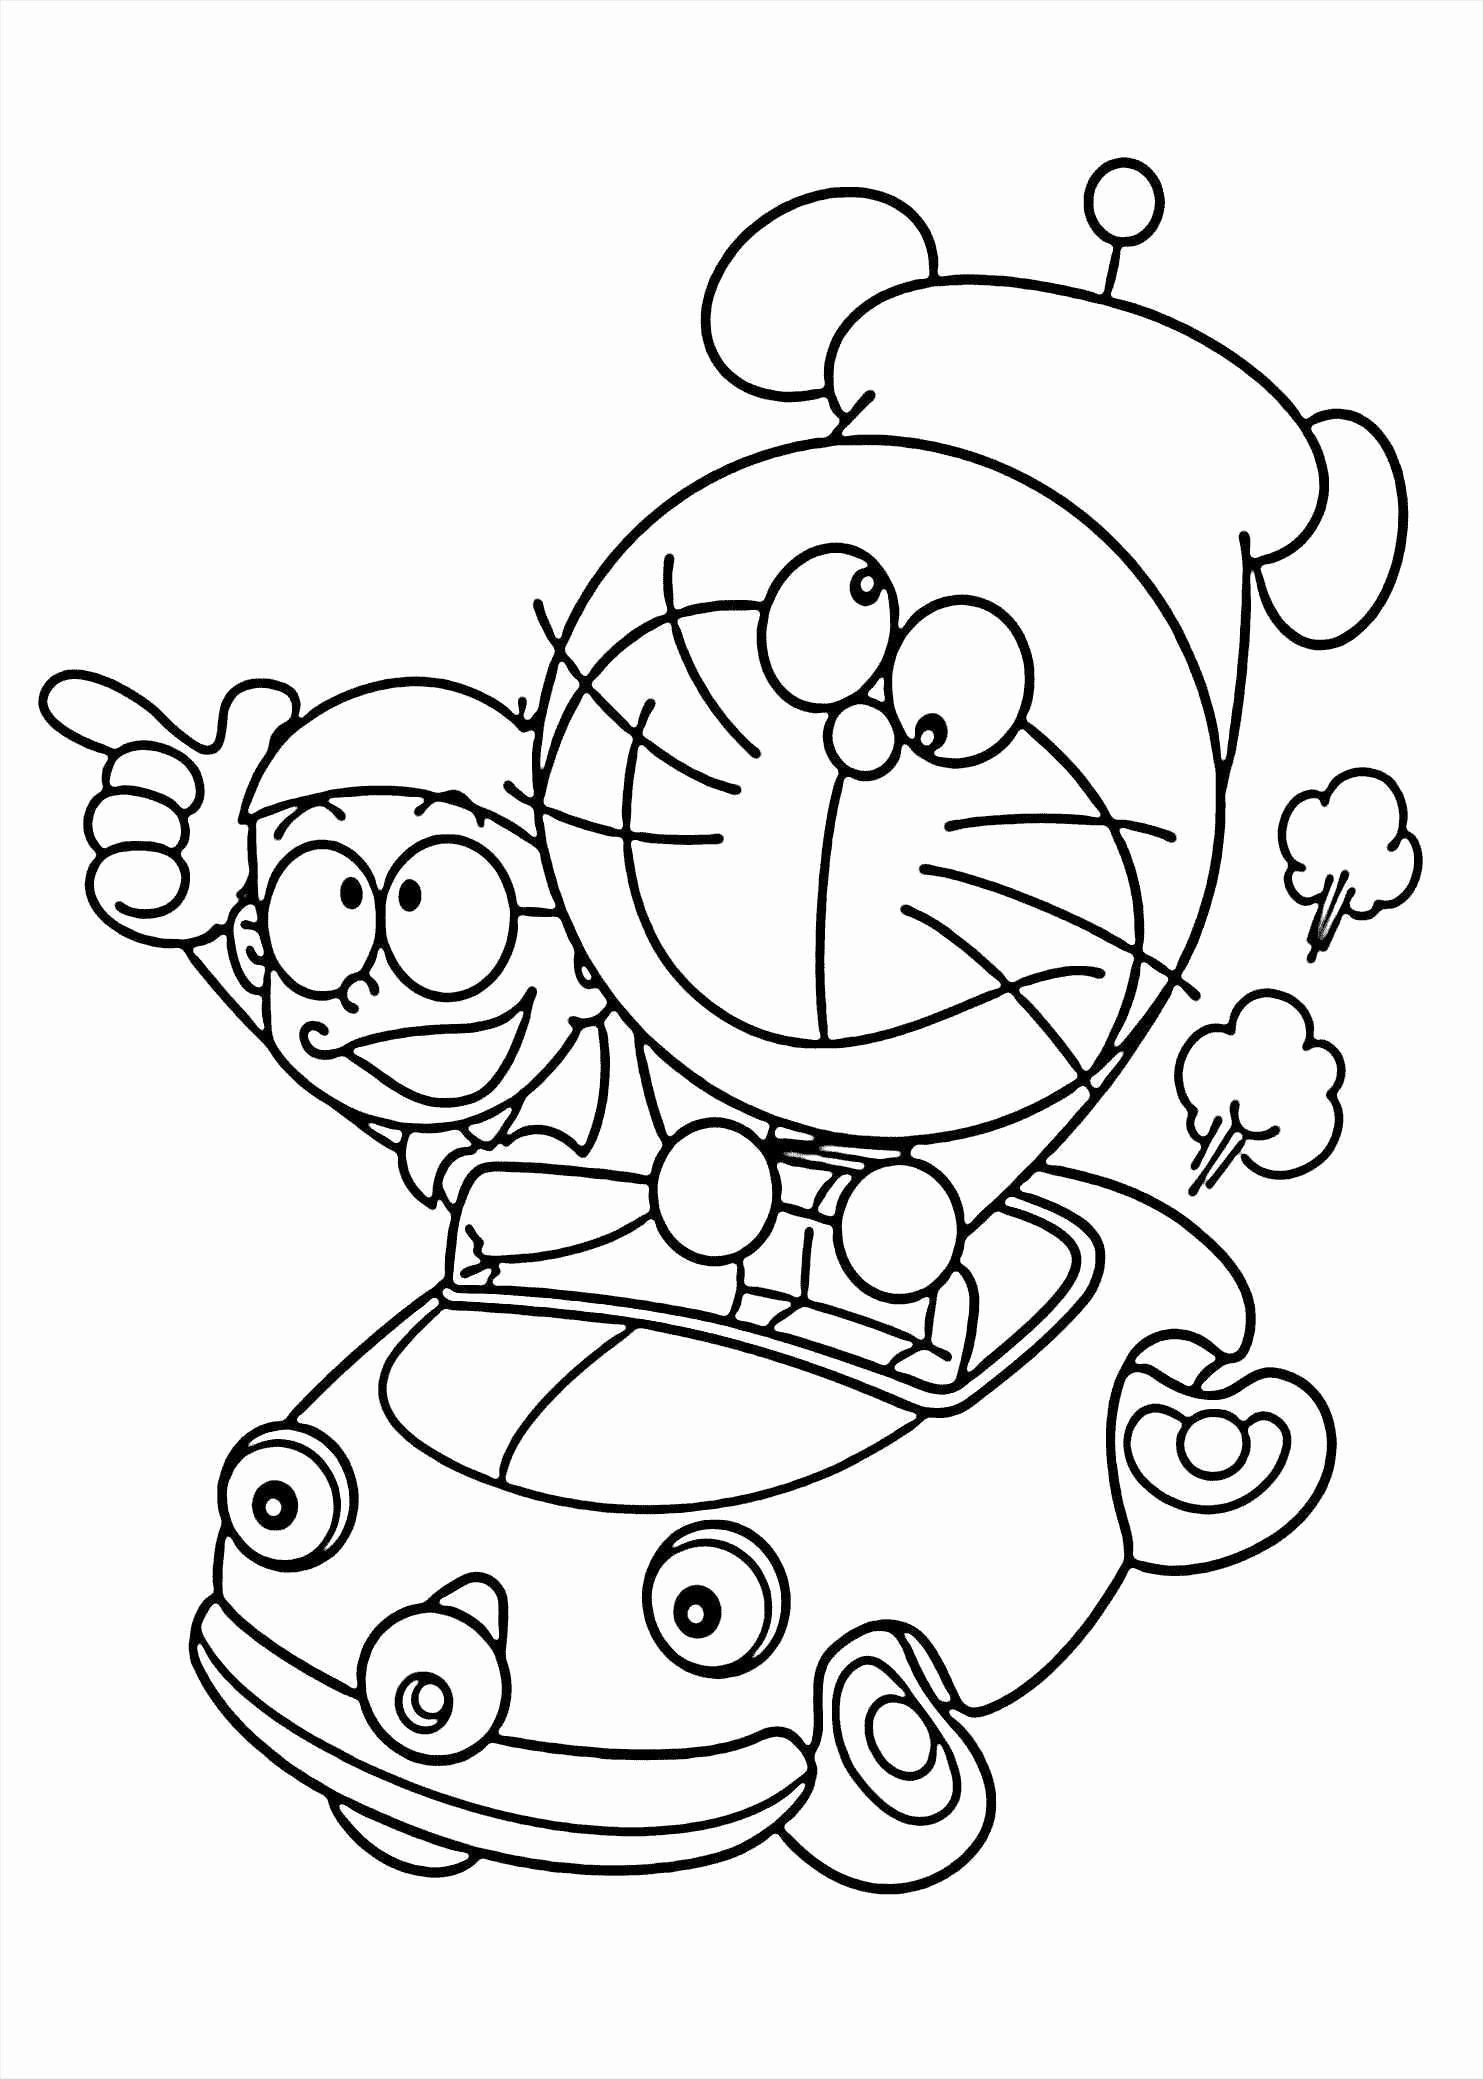 Pirate Flag Coloring Pages Unique Shimmer And Shine Coloring Page